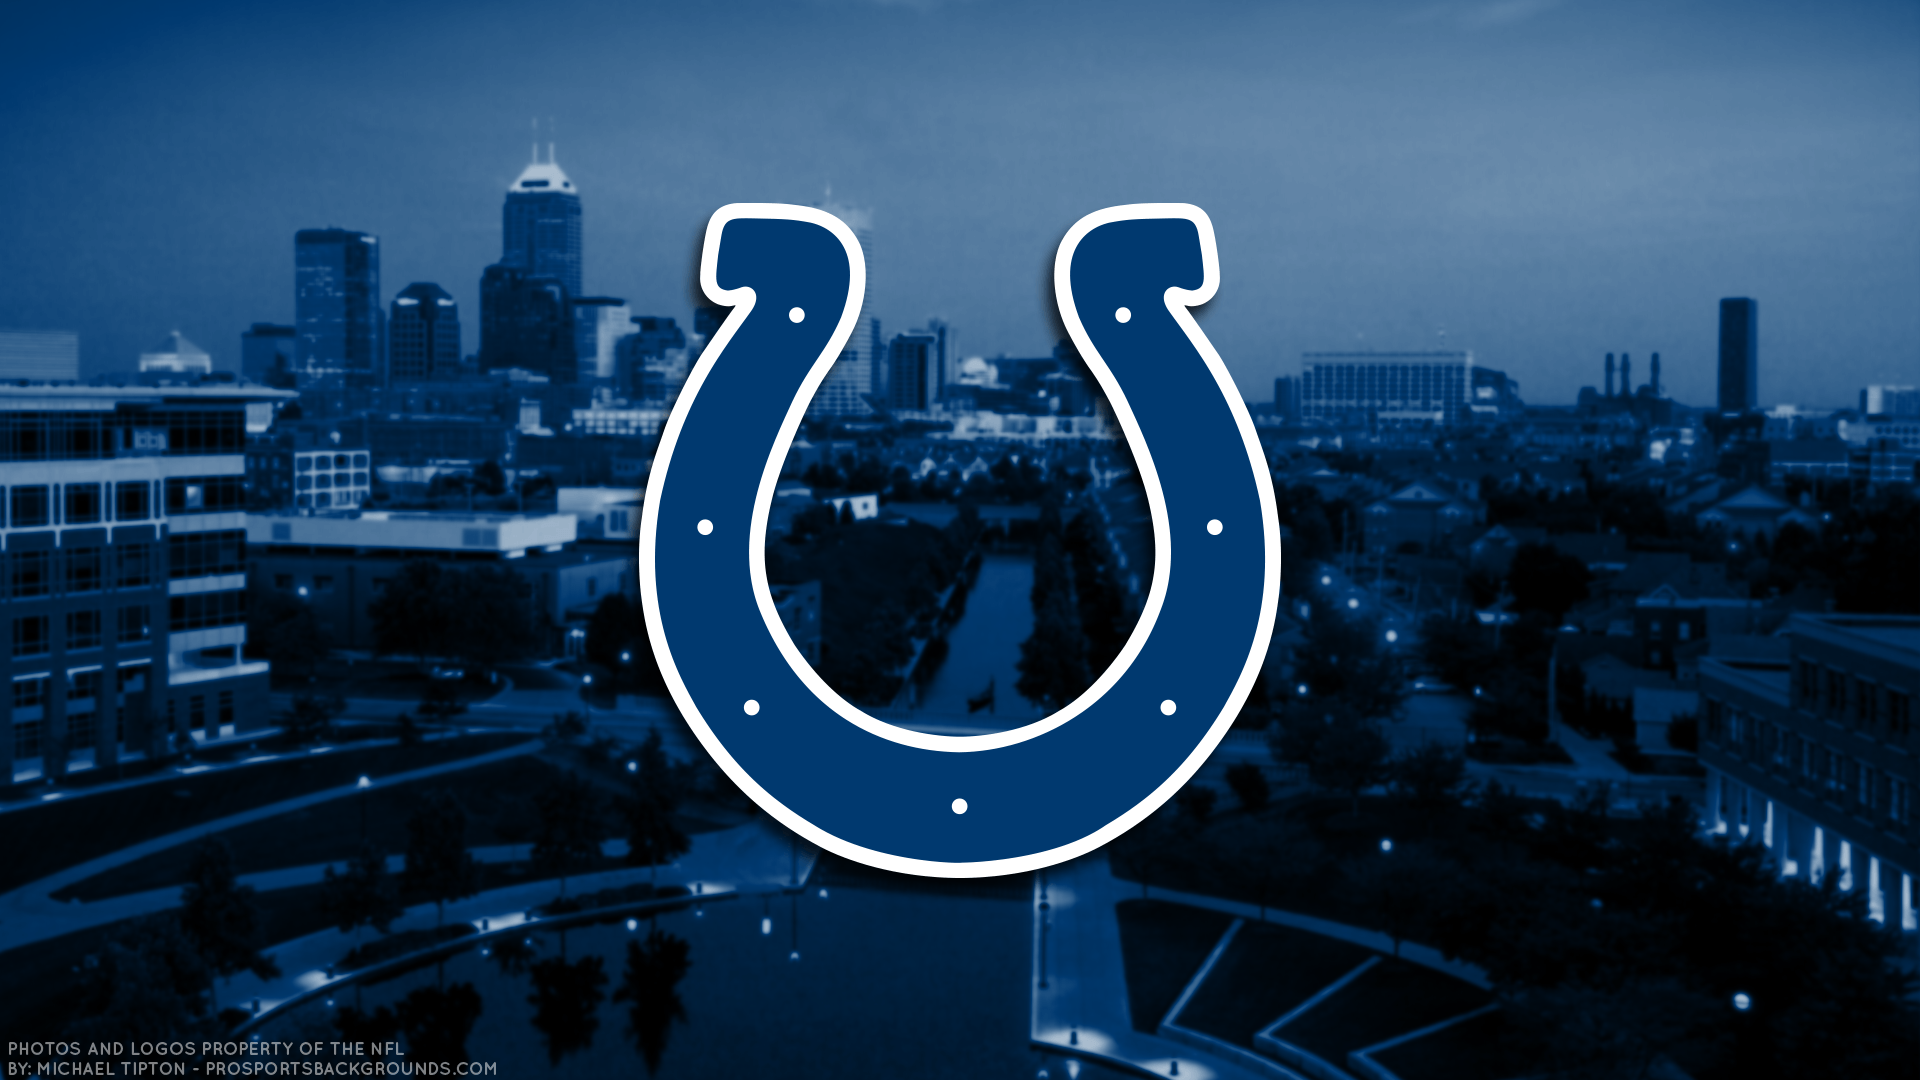 2018 Indianapolis Colts Wallpapers - PC |iPhone| Android